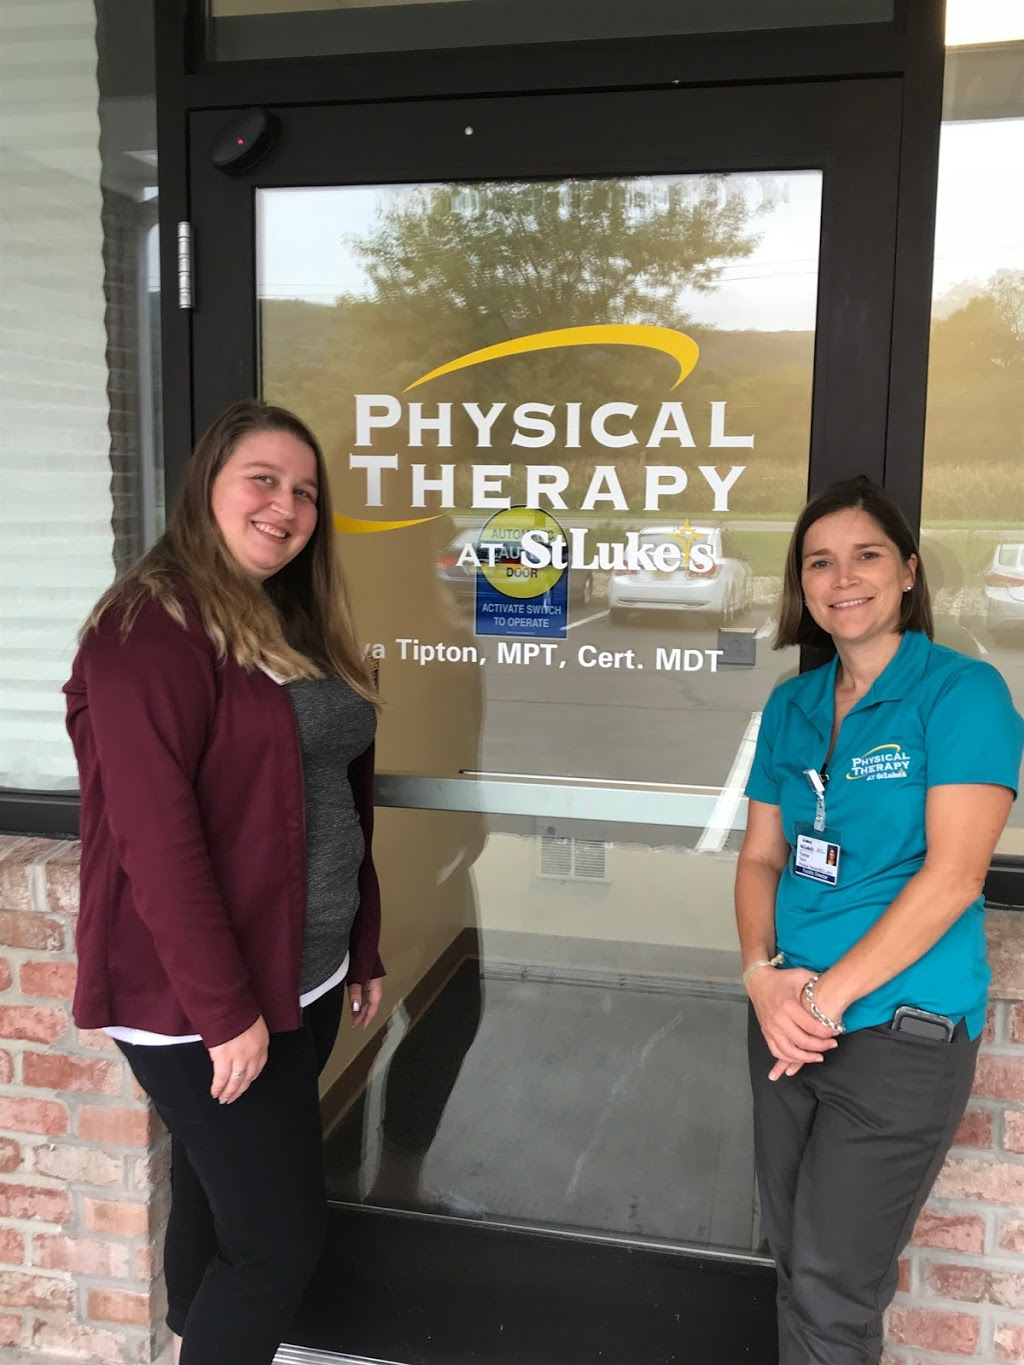 Physical Therapy at St. Lukes - health  | Photo 4 of 4 | Address: 187 County Road 519, Belvidere, NJ 07823, USA | Phone: (908) 847-3390